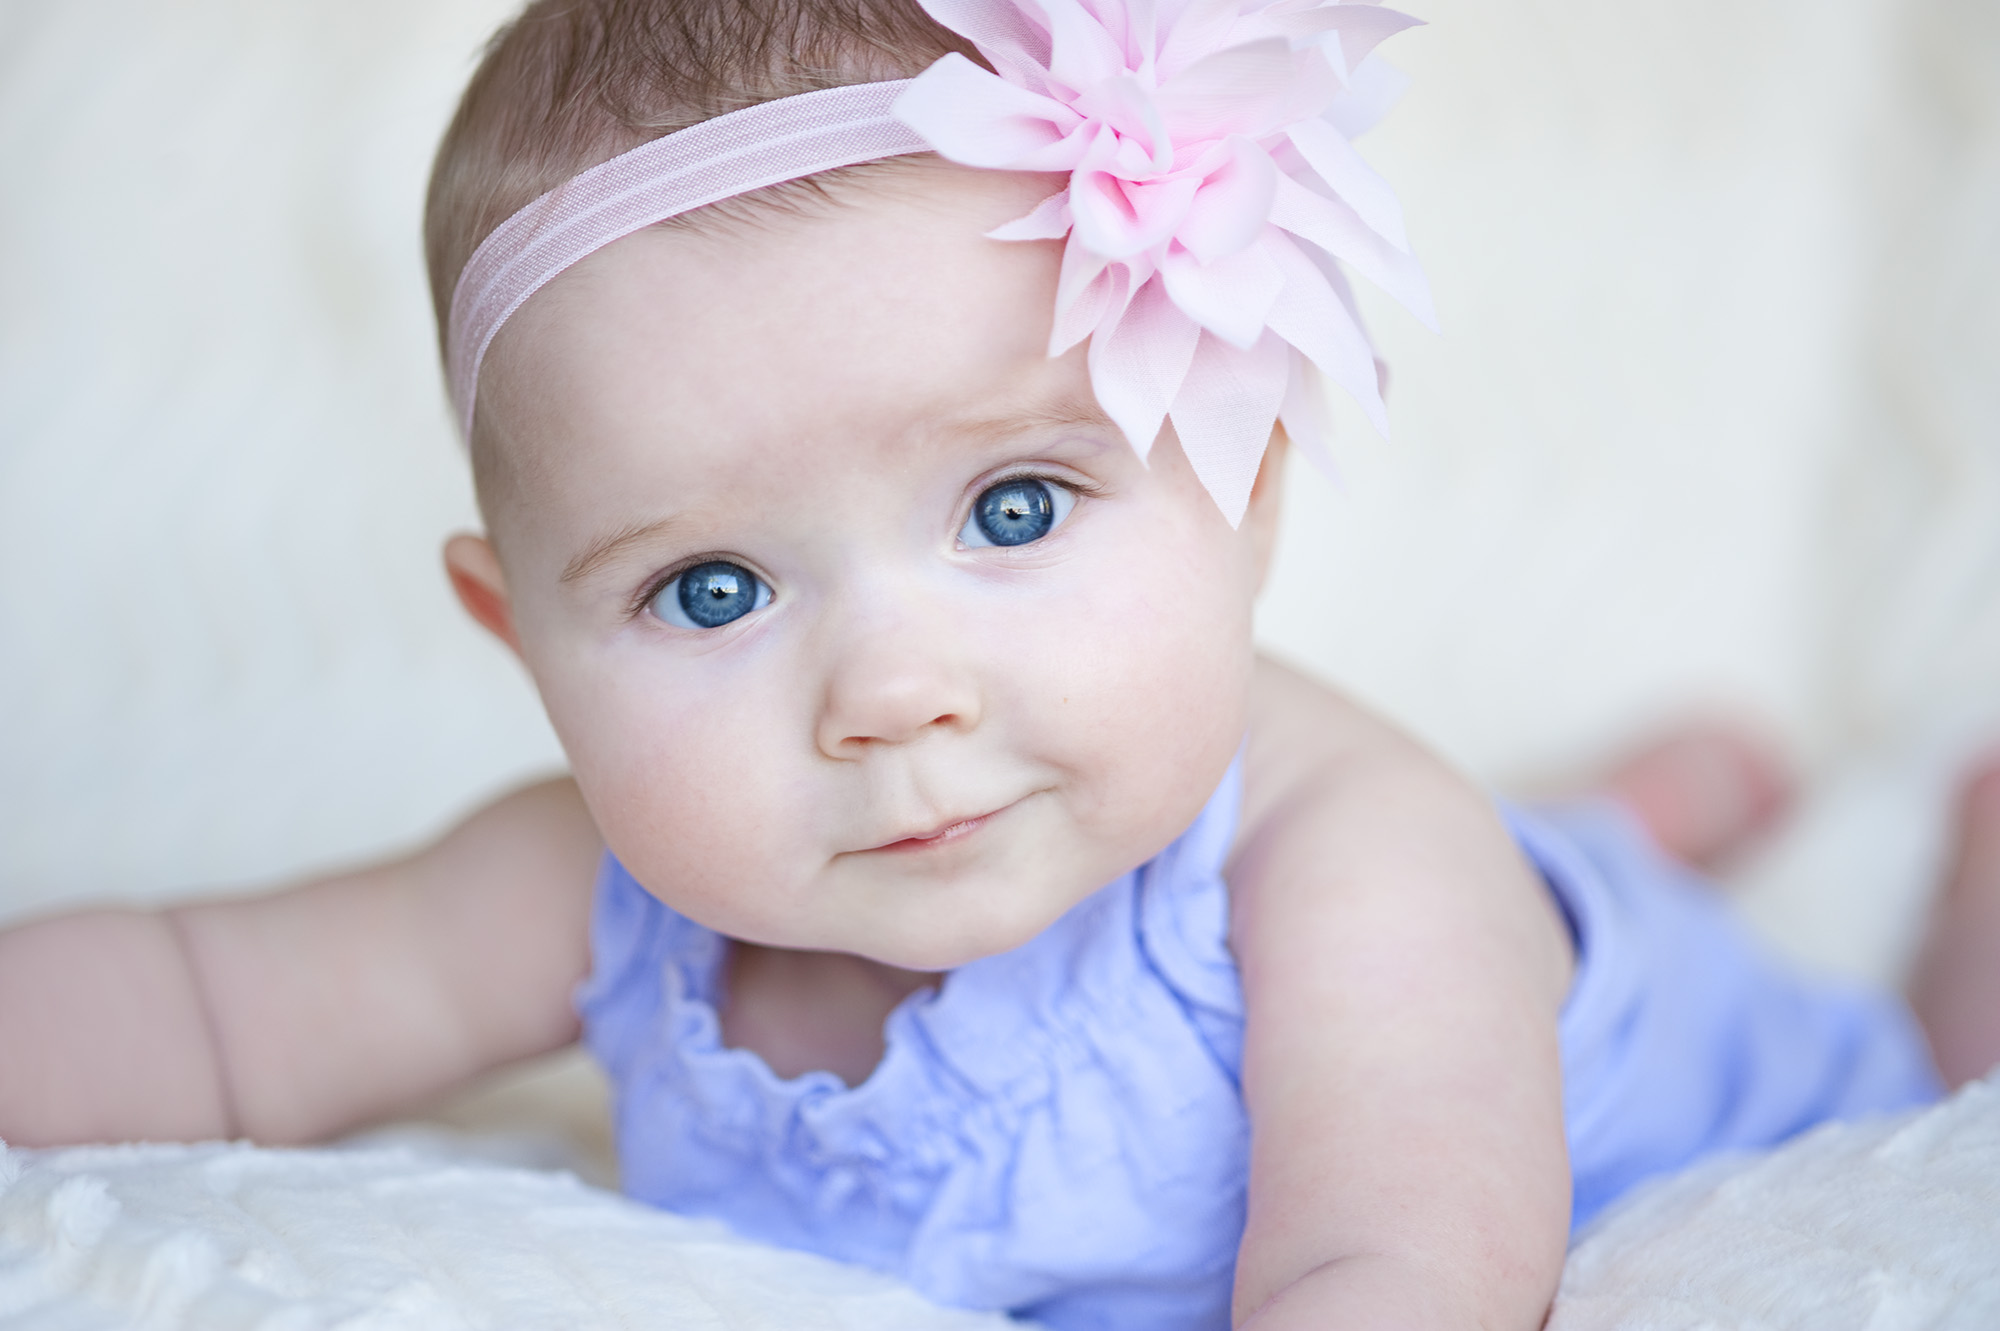 Kinsley Kay Reidinger, 6 months, from Lancaster, Wisconsin, has her portraits taken before nap time at her Great Uncle's house in Lake Forest, California on Saturday, March 28, 2015.  Reidinger is such a sweet, loving, happy baby girl!